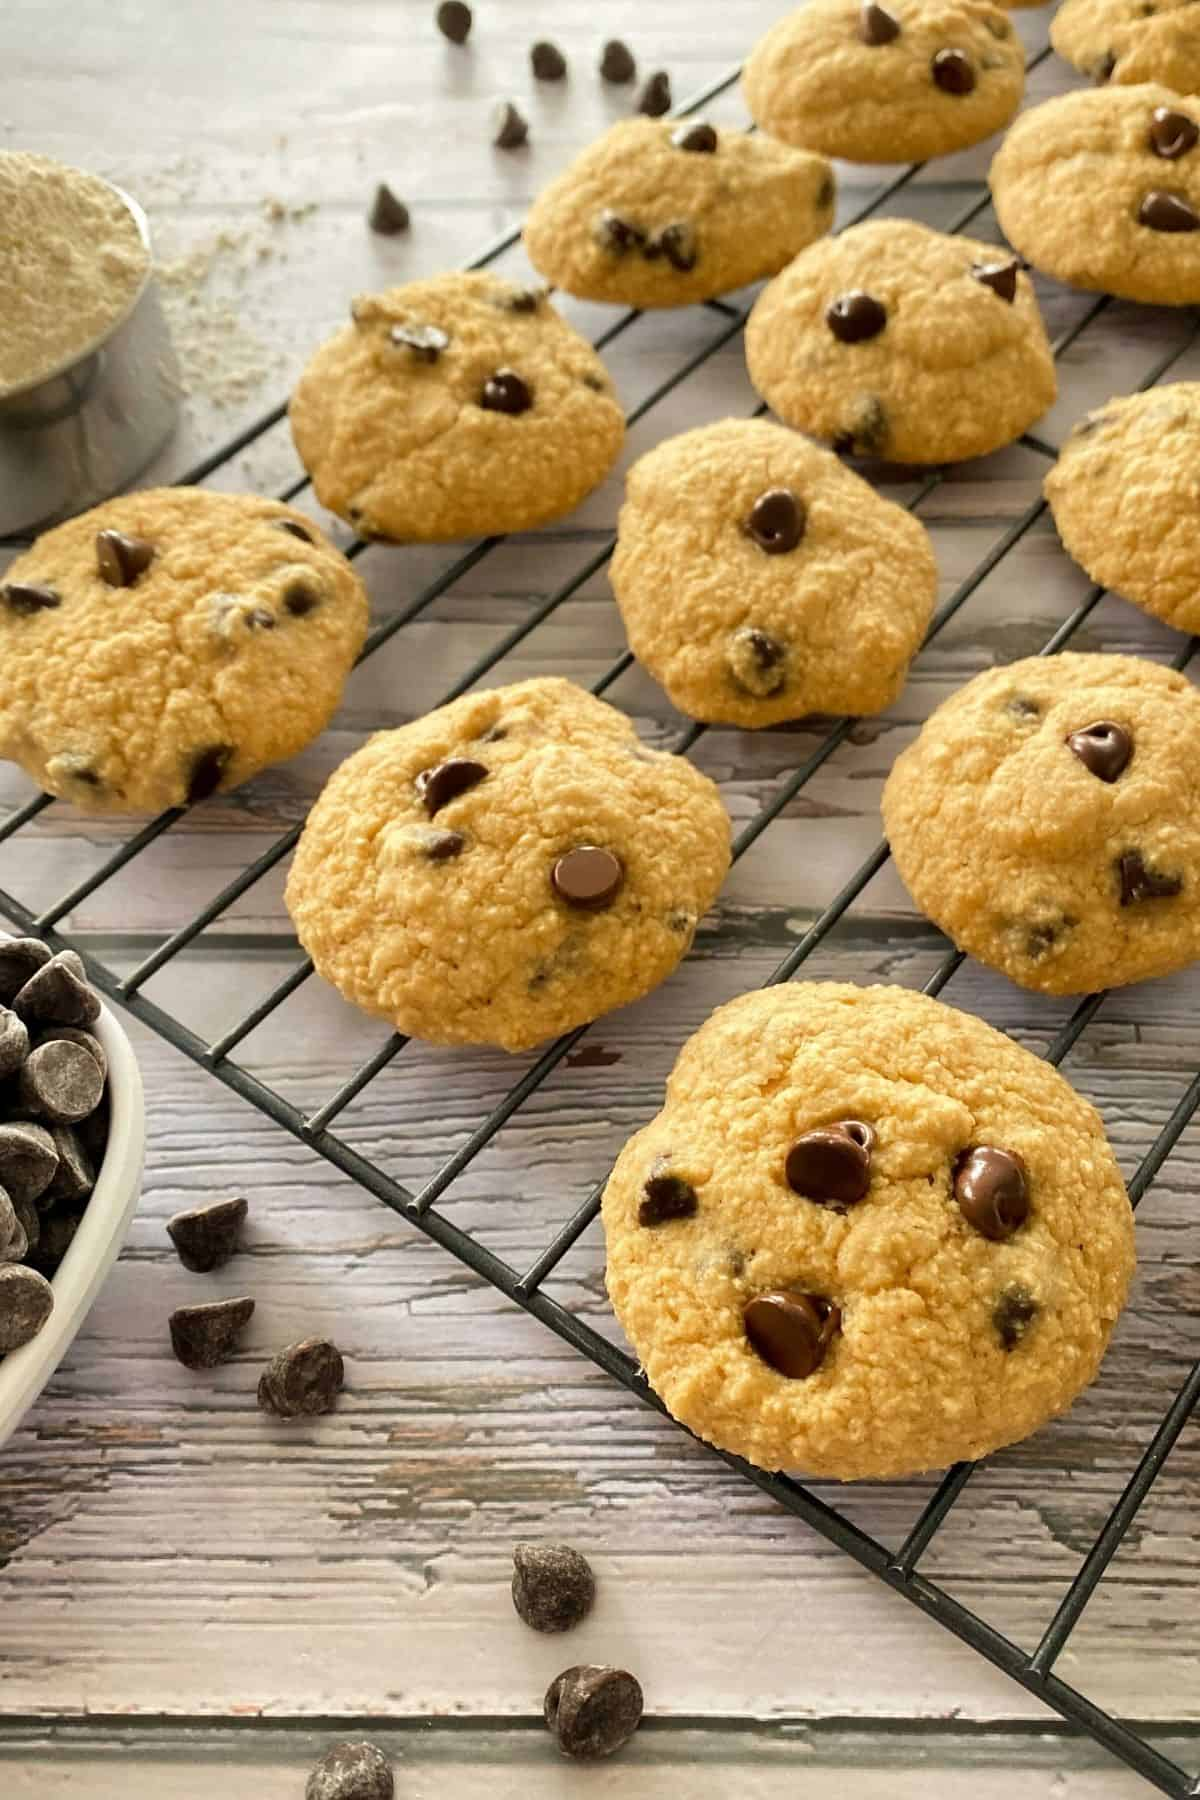 Chocolate chip cookies on cooling rack with chocolate chips on the side.